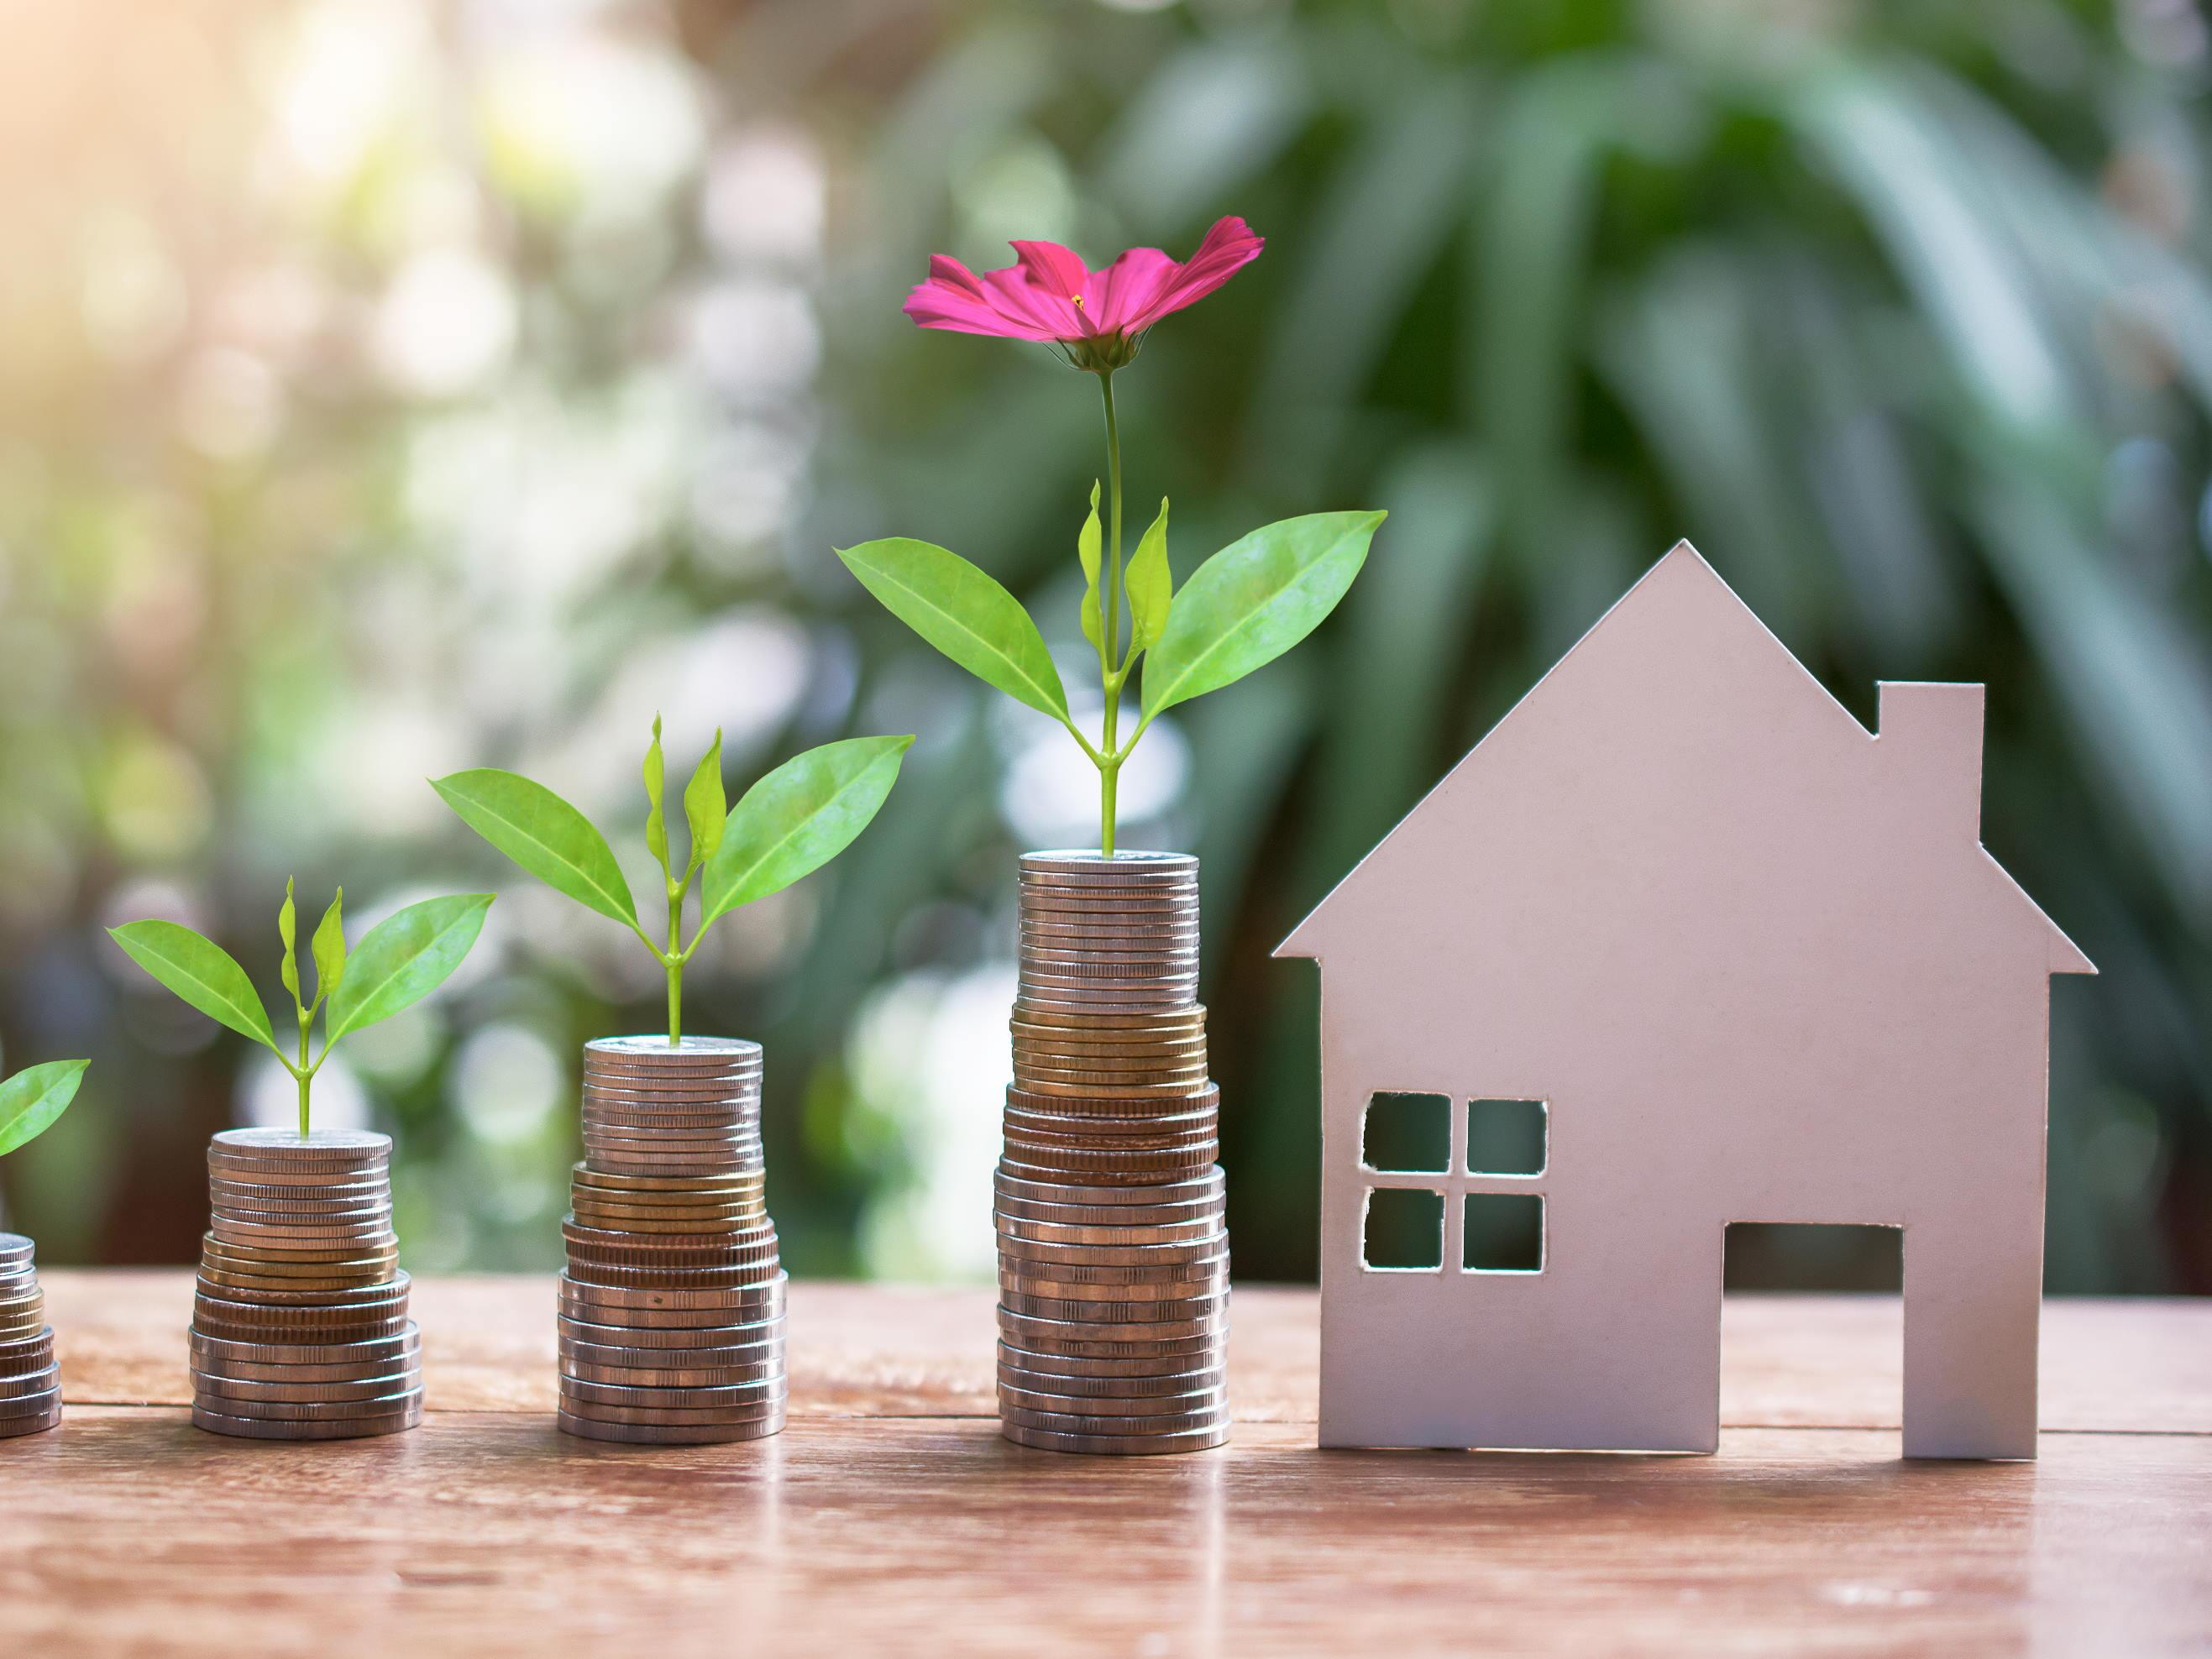 How to start investing in property in 2021